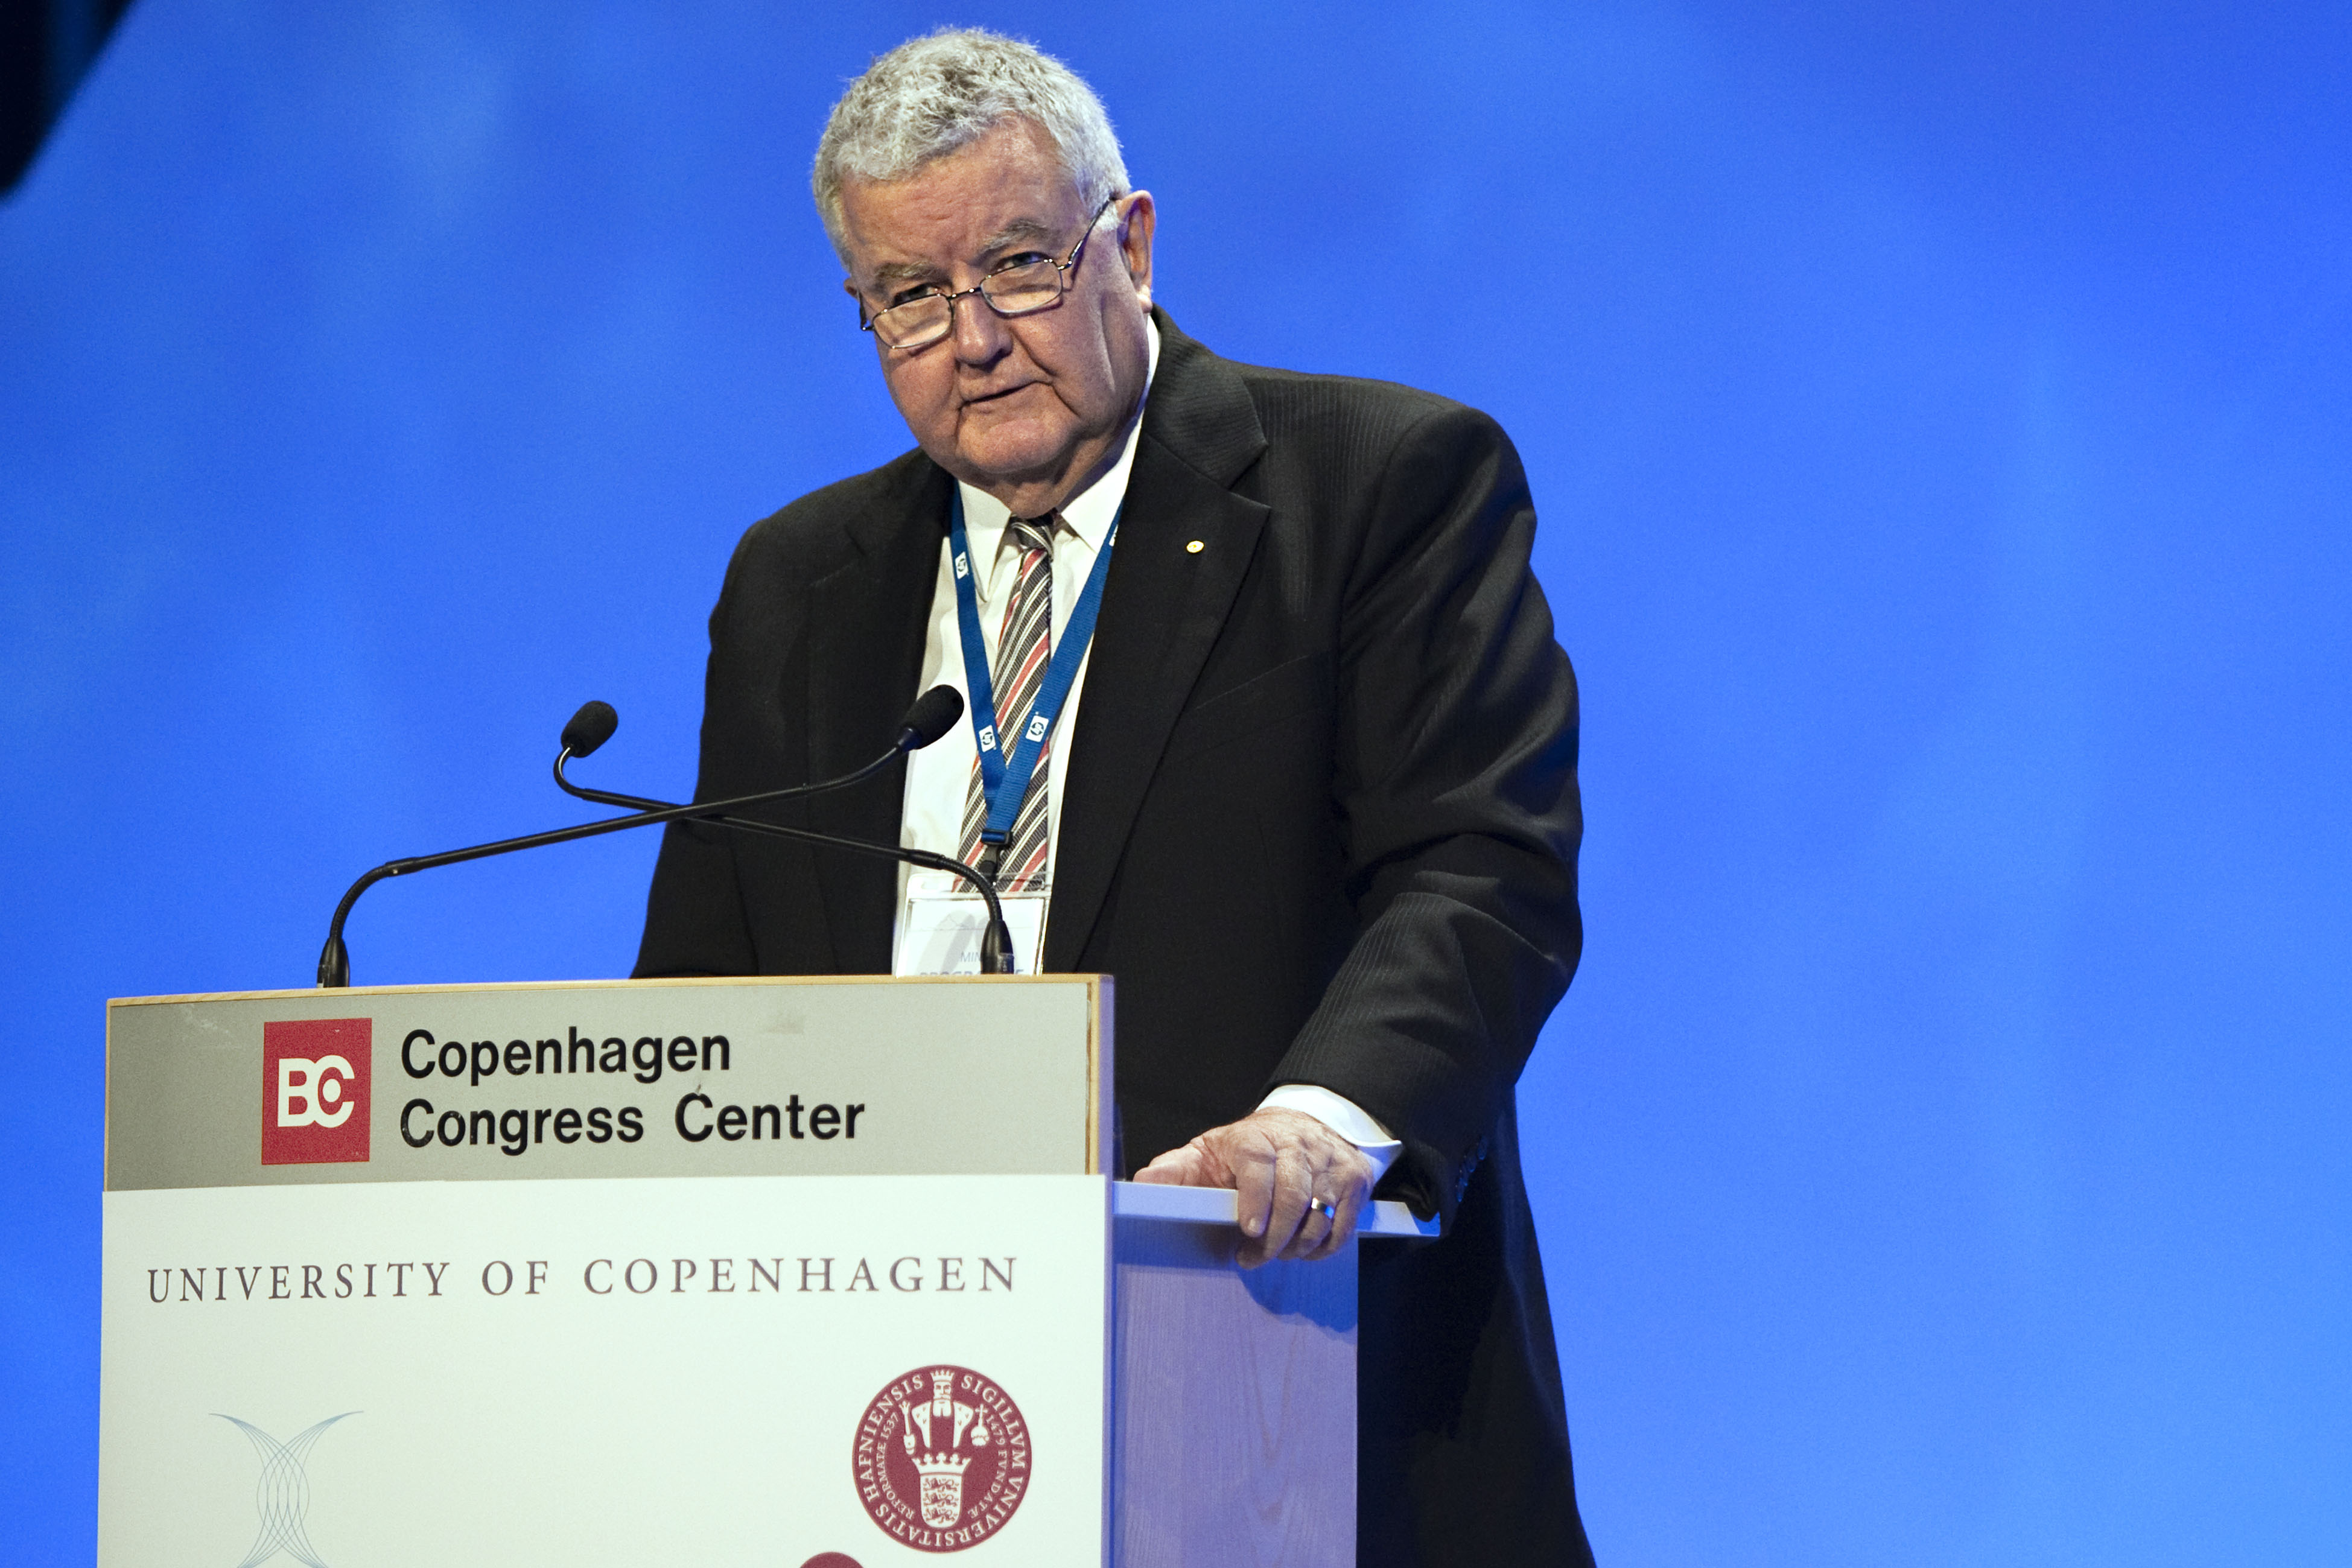 Prof. Ian Chubb at the Climate congress, Copenhagen 2009, March 10-12. Opening session.